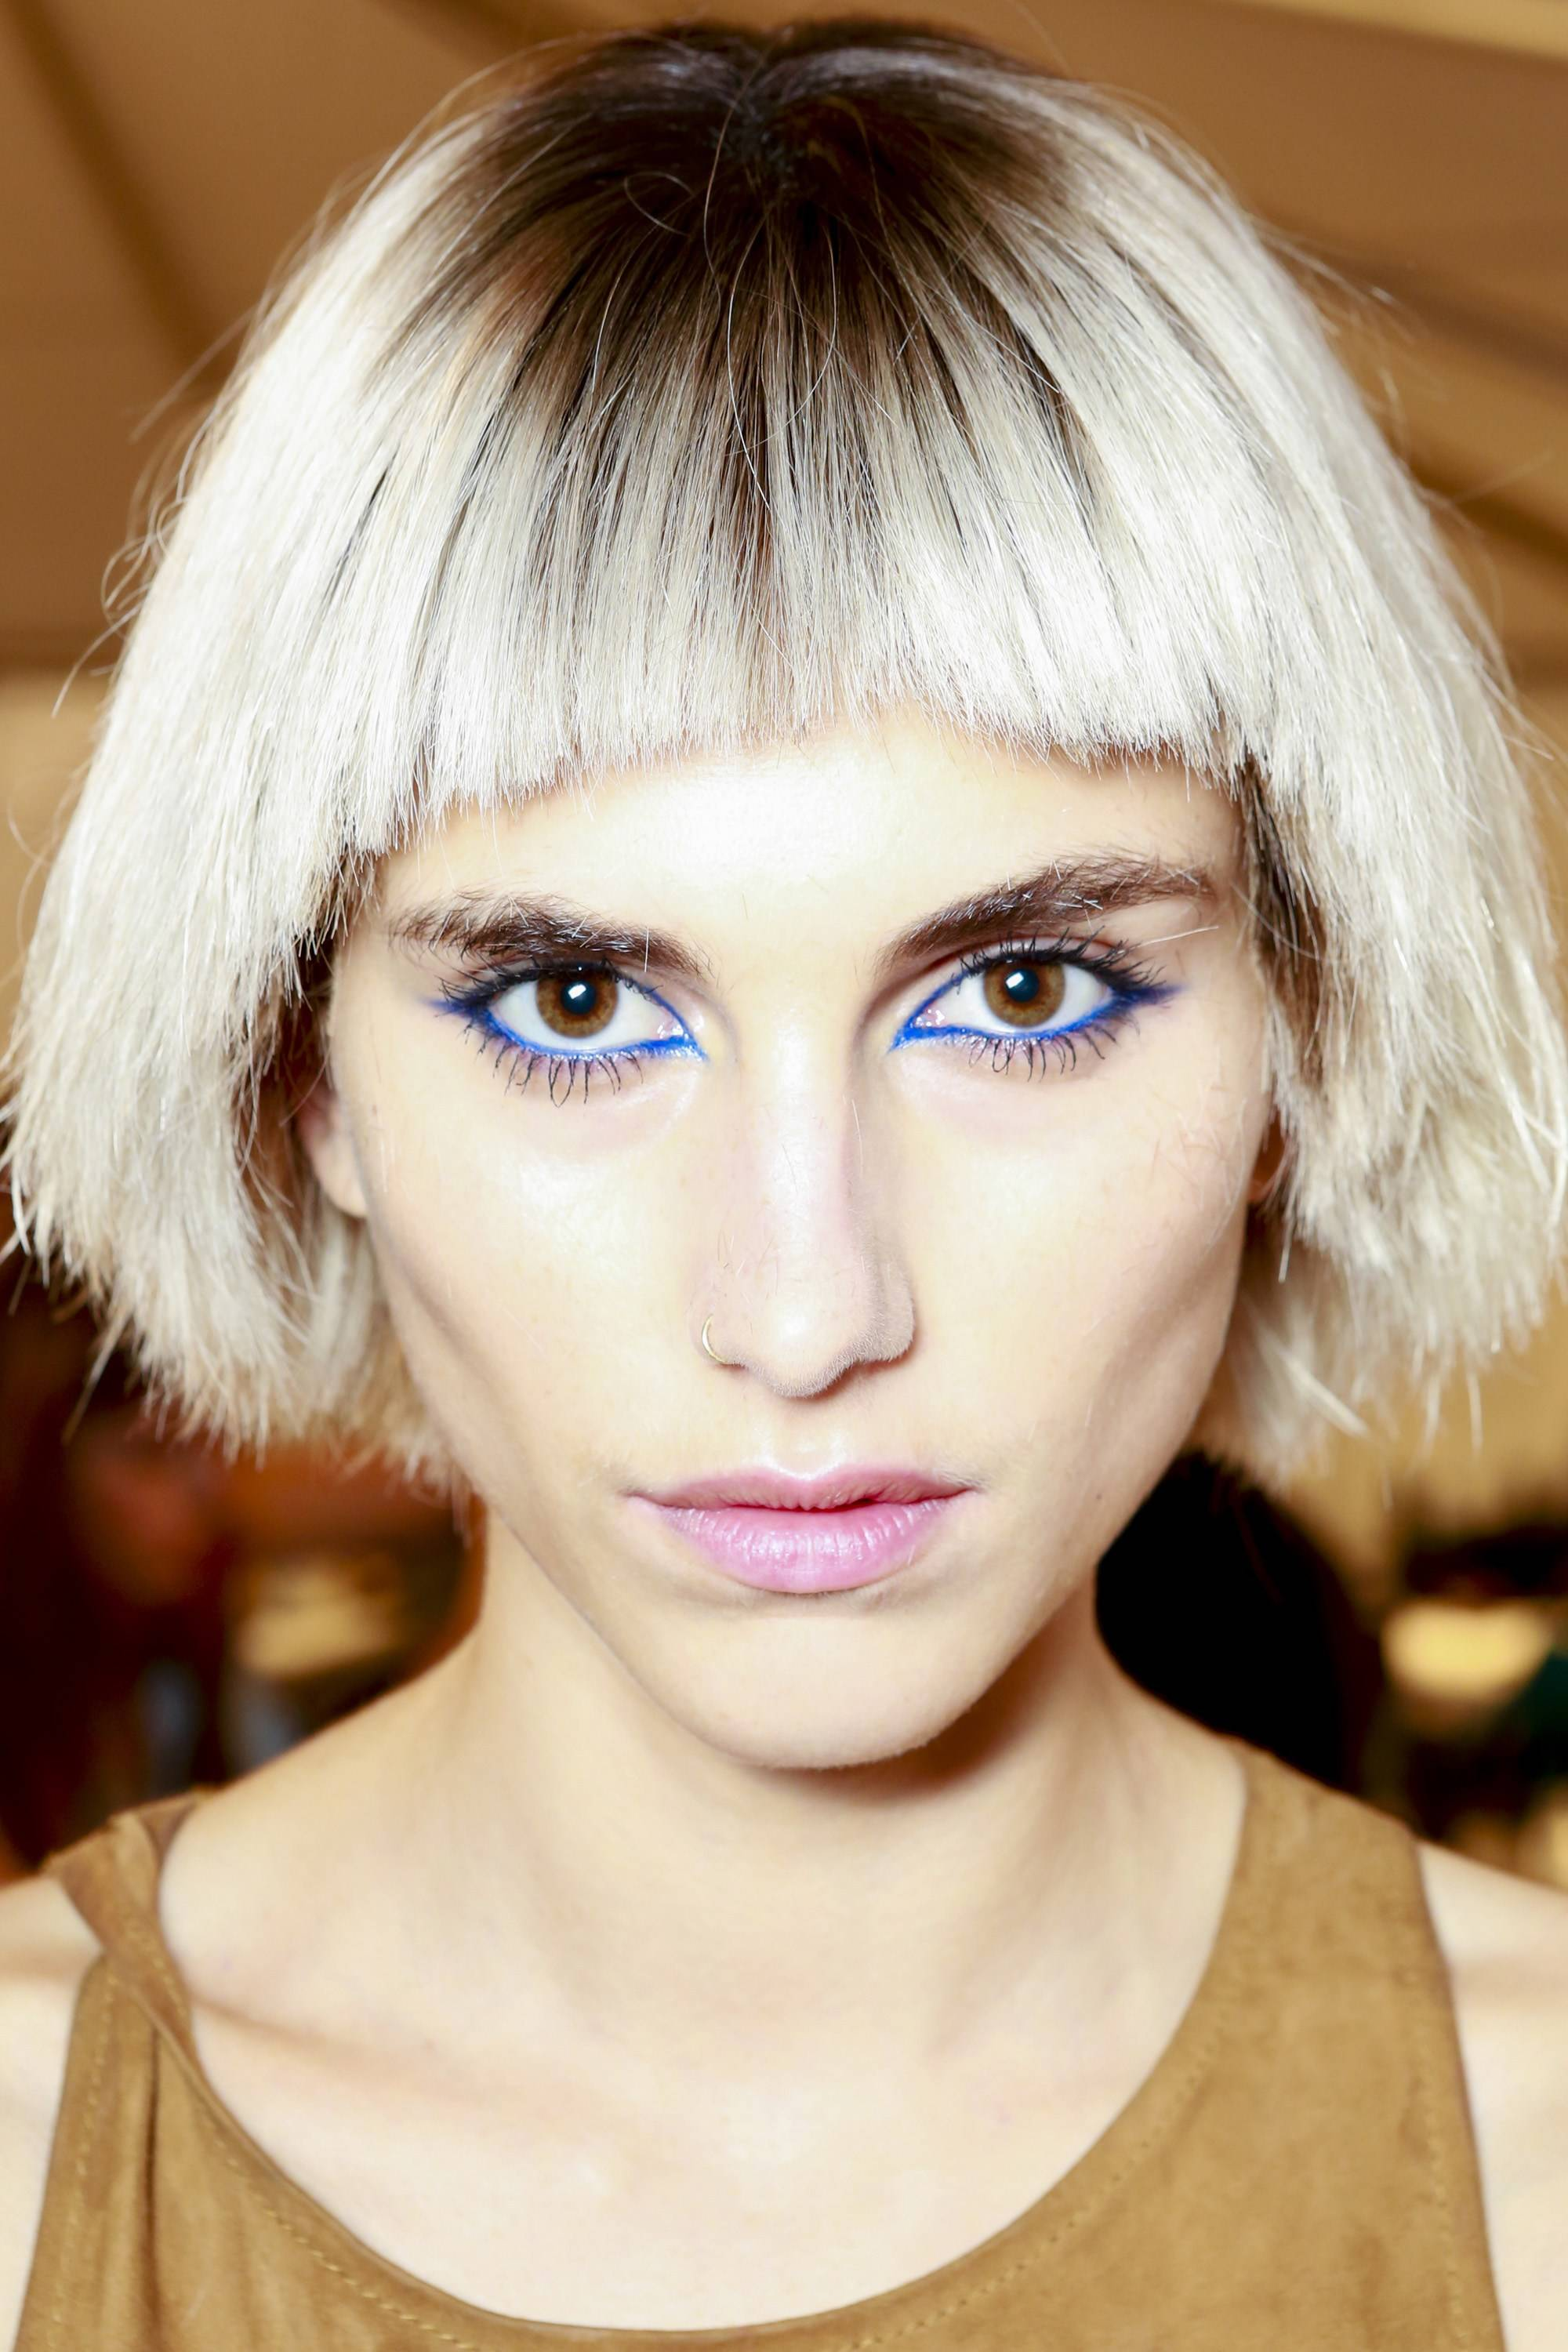 Bobs cuts hairstyles, haircuts, ideas & pictures | Glamour UK